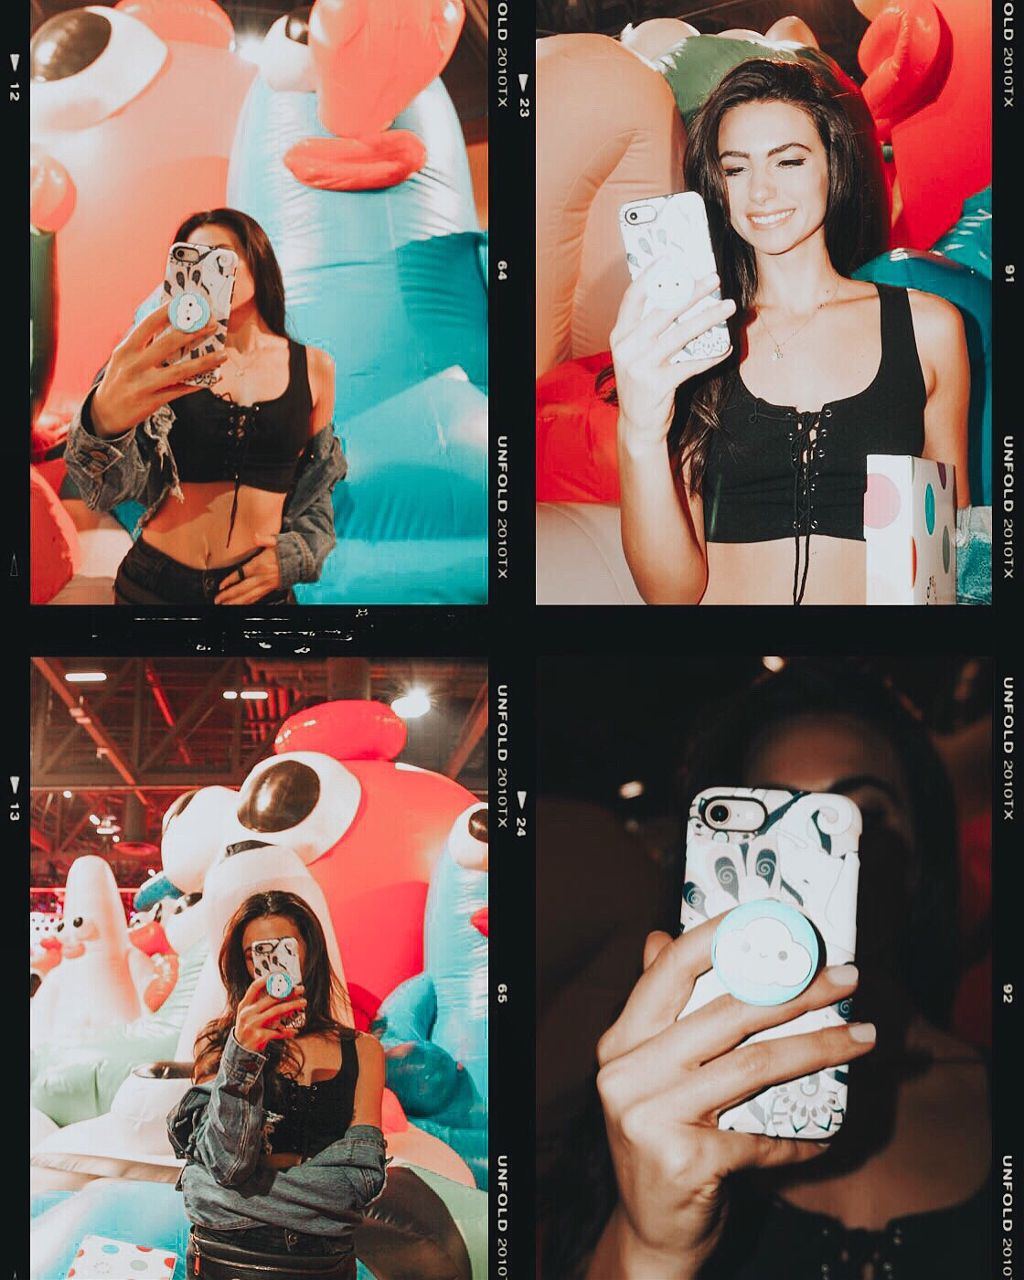 #ComplexCon at the @popsockets Poptivism activation where they are making the world a better place! 🌎✨ #Poptivism is an app where you can buy #PopSockets grips and they donate HALF of each sale to a charity of your choice. It's activism at your fingertips, which you know I'm super passionate about and love supporting 💞. Thank you @popsockets for making a positive and meaningful change! I hope more brands get inspired to take positive action. #Friendswithyou   #freetoedit #california #blogger #iphone